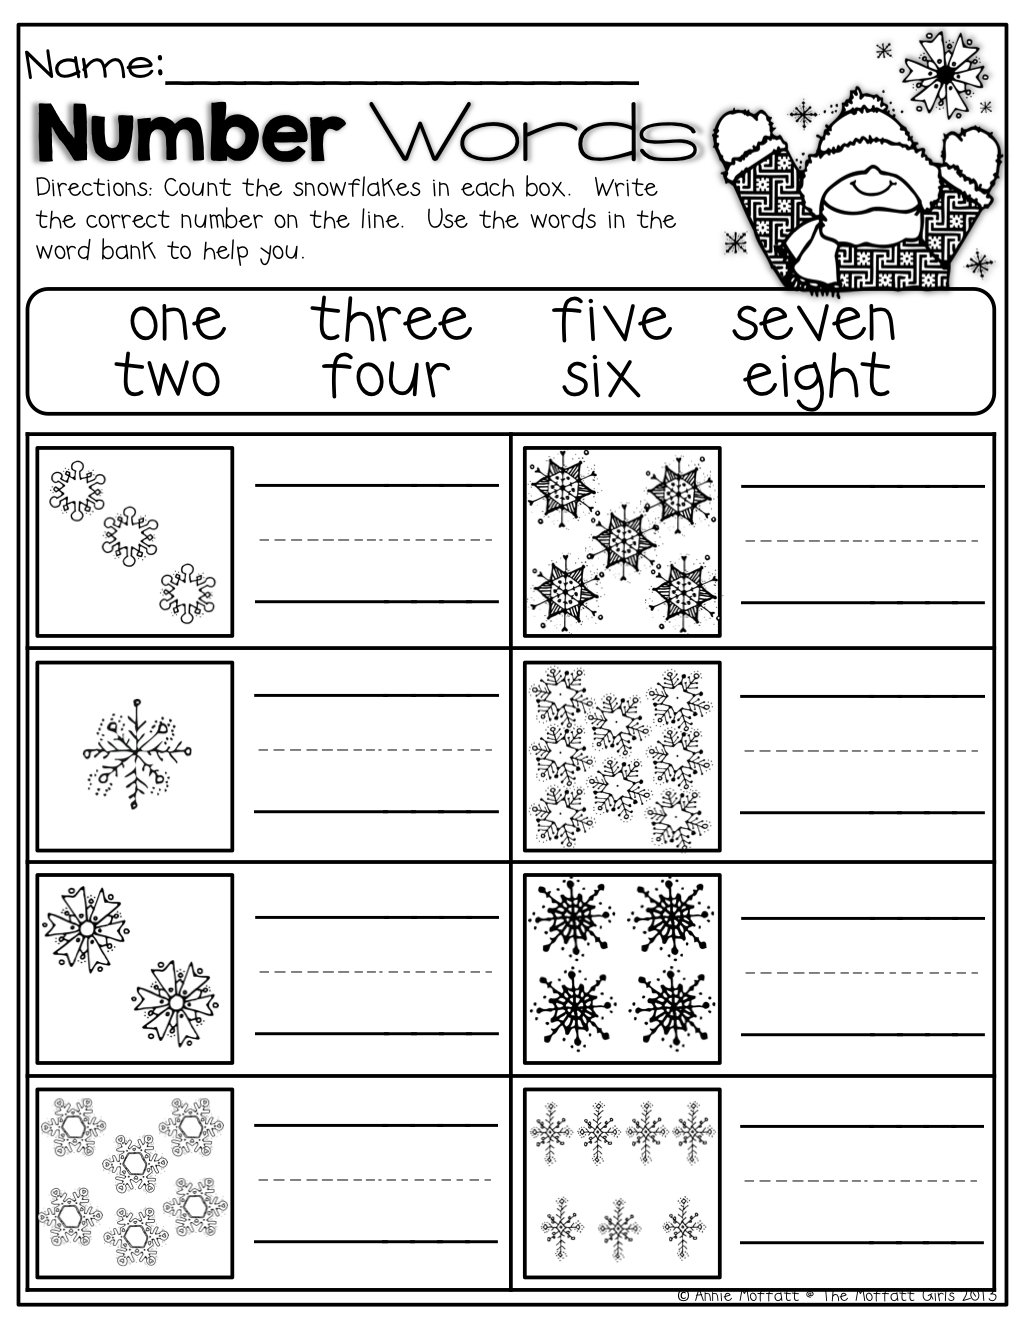 Spelling Kindergarten Number Worksheet 1 20